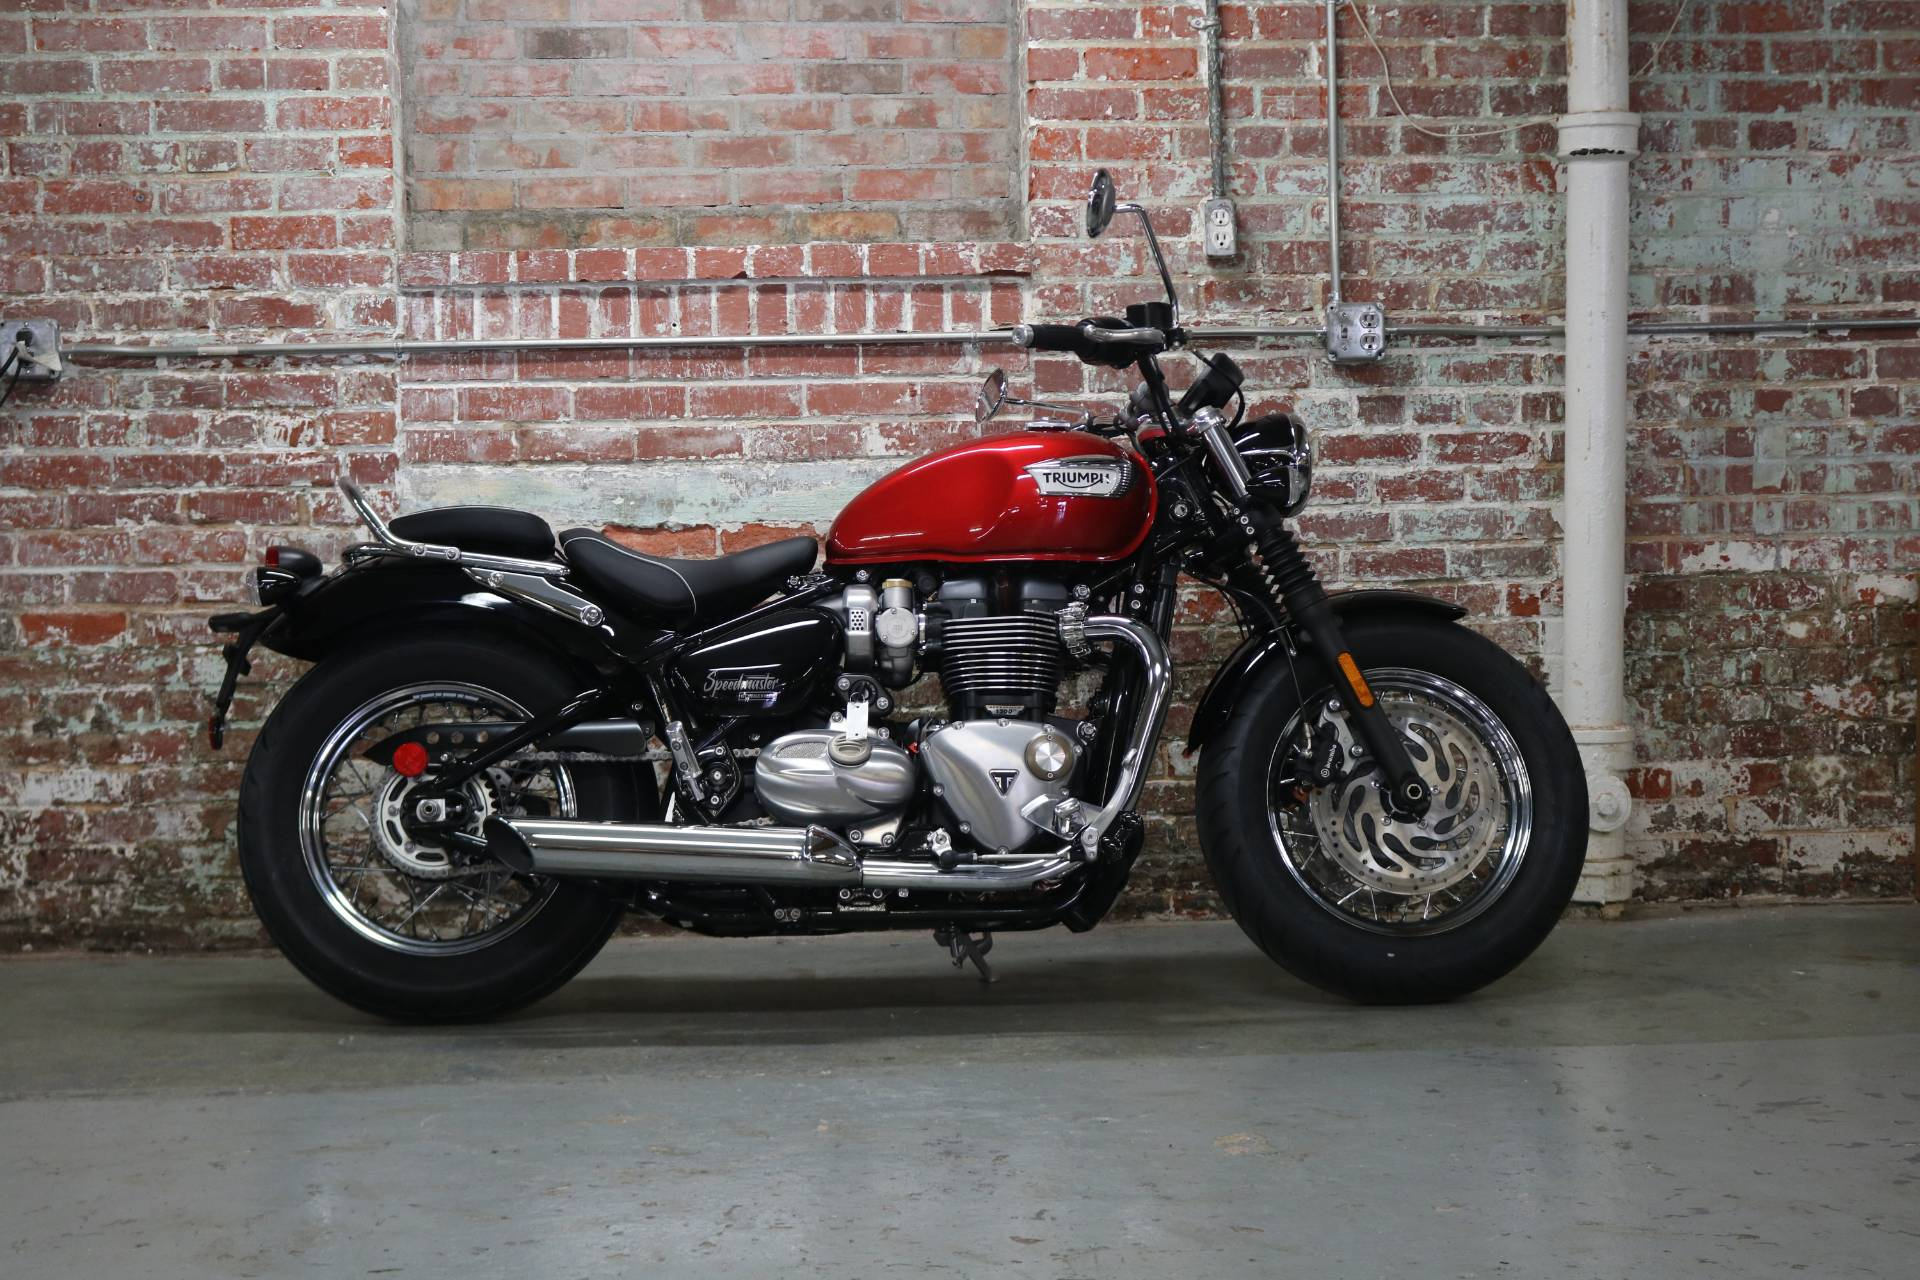 New 2019 Triumph Bonneville Speedmaster Motorcycles In Greensboro